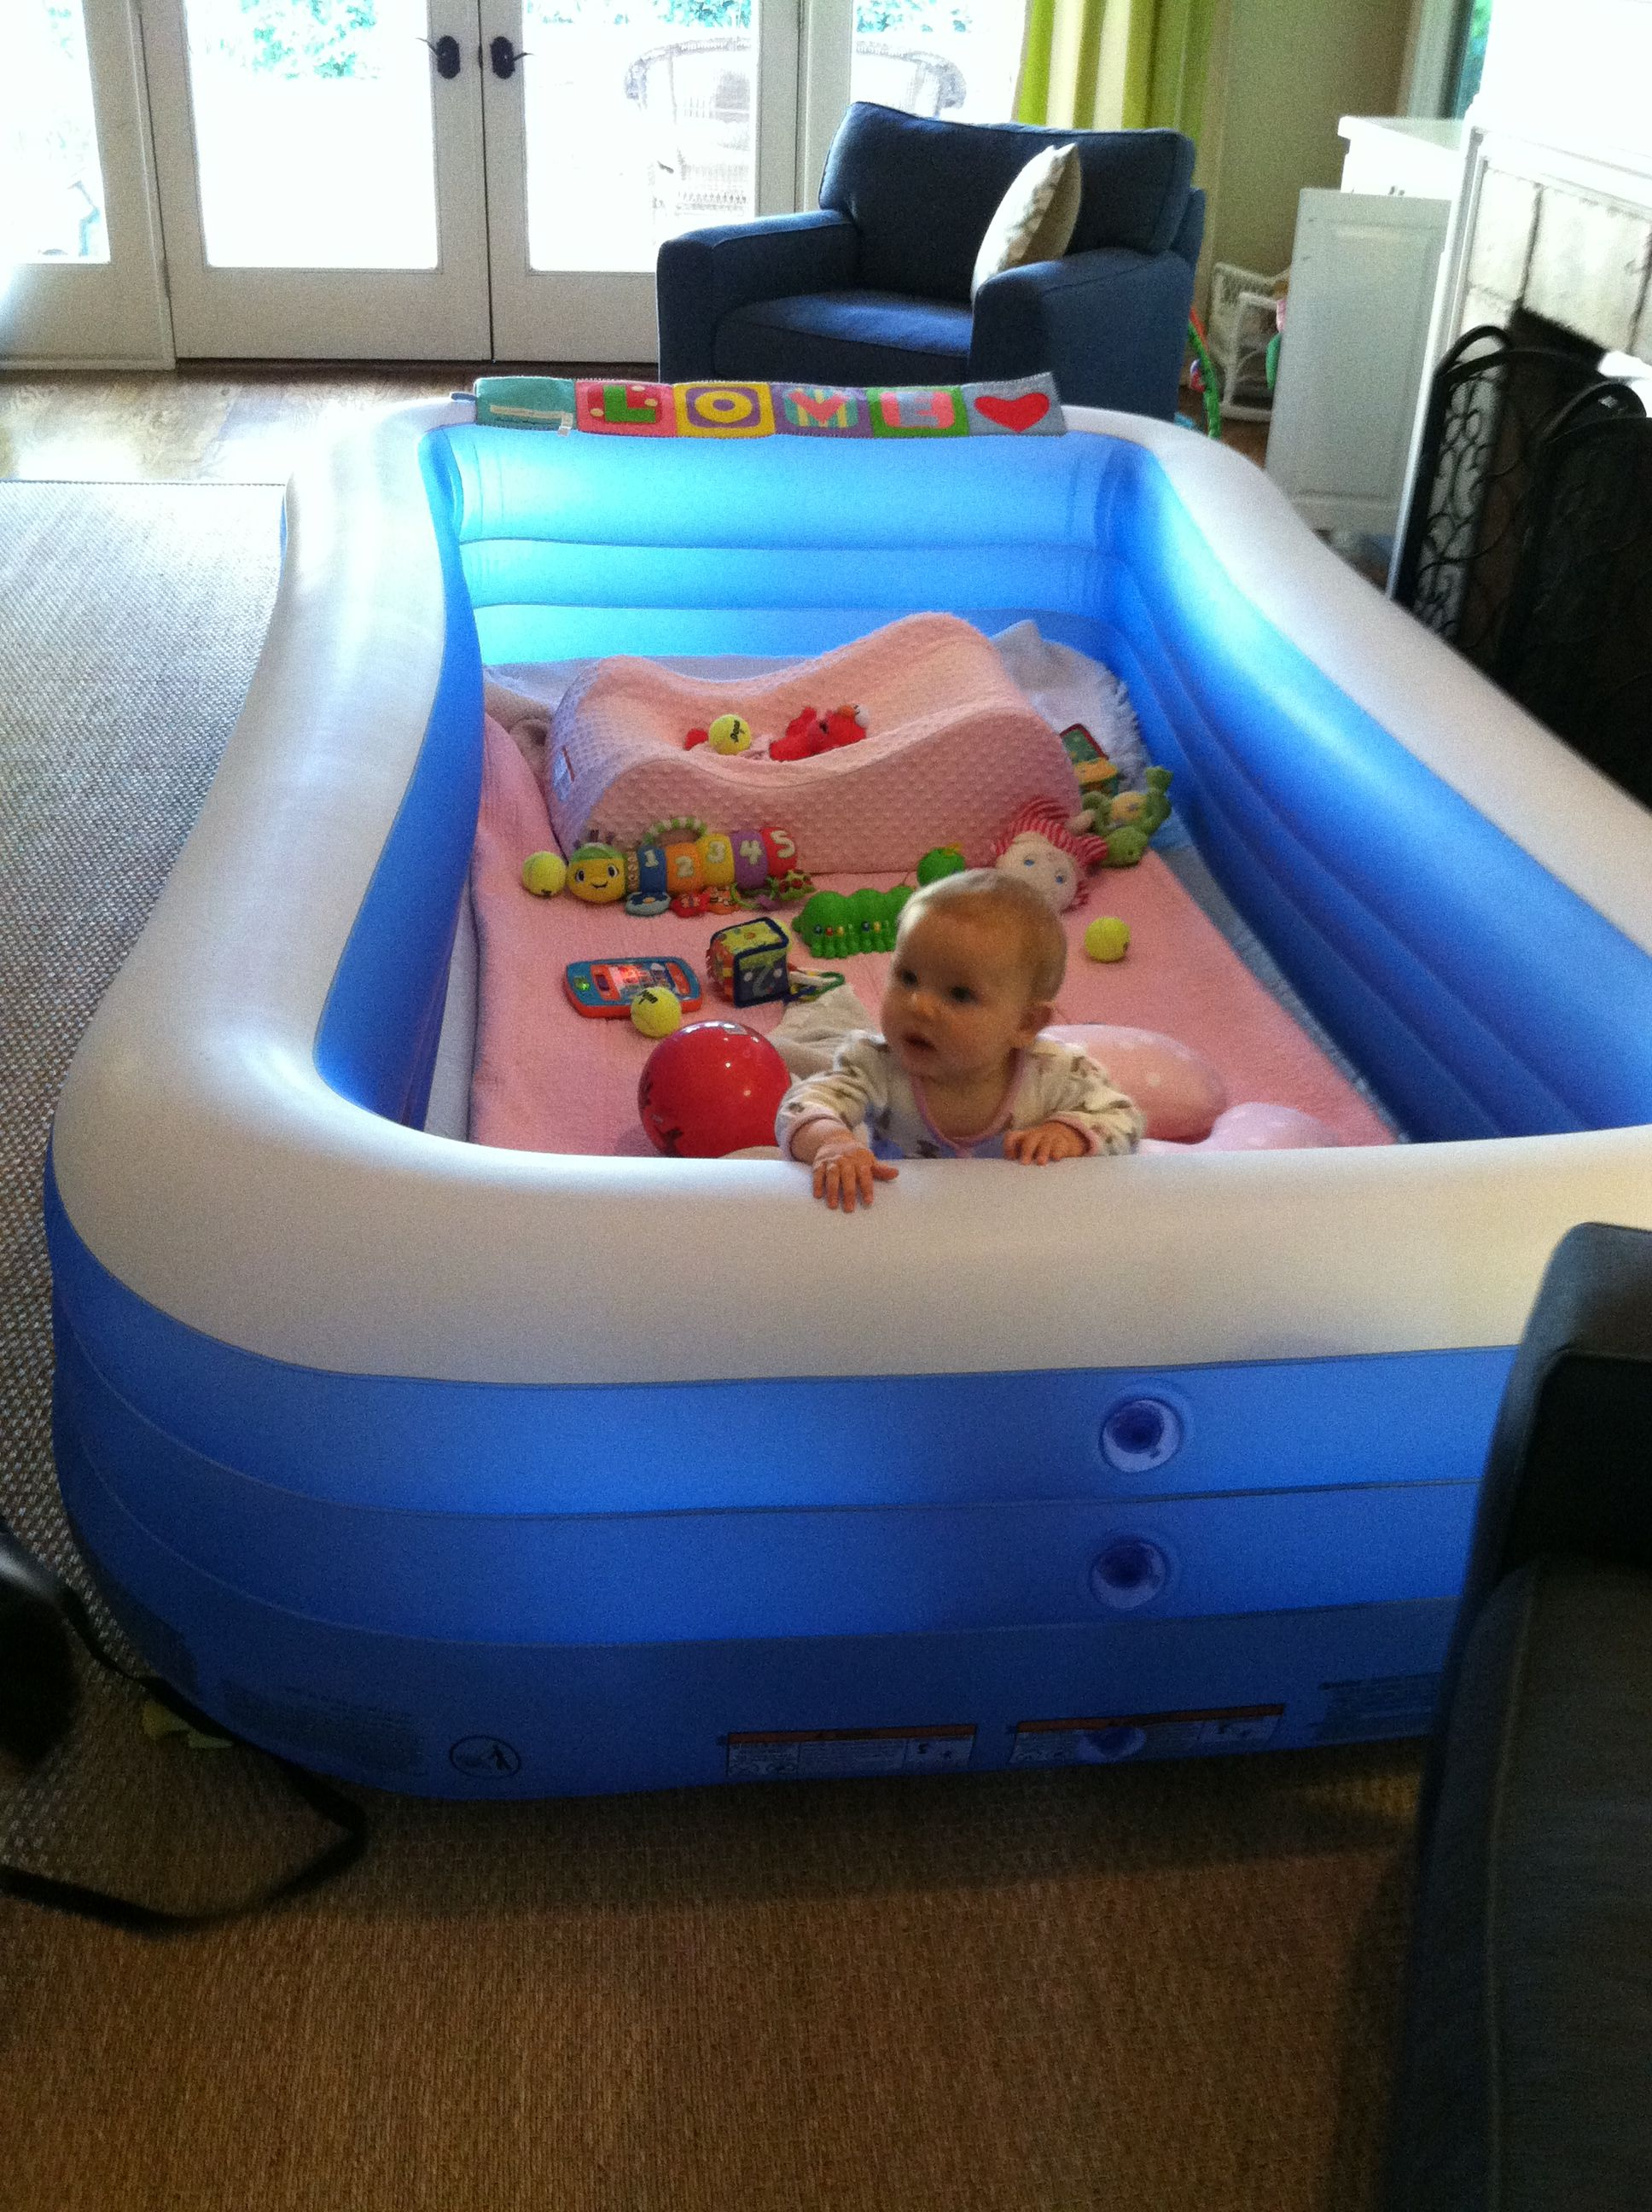 Use An Inflatable Pool As A Playpen For Your Toddler Baby Play Areas Baby Pool Baby Play